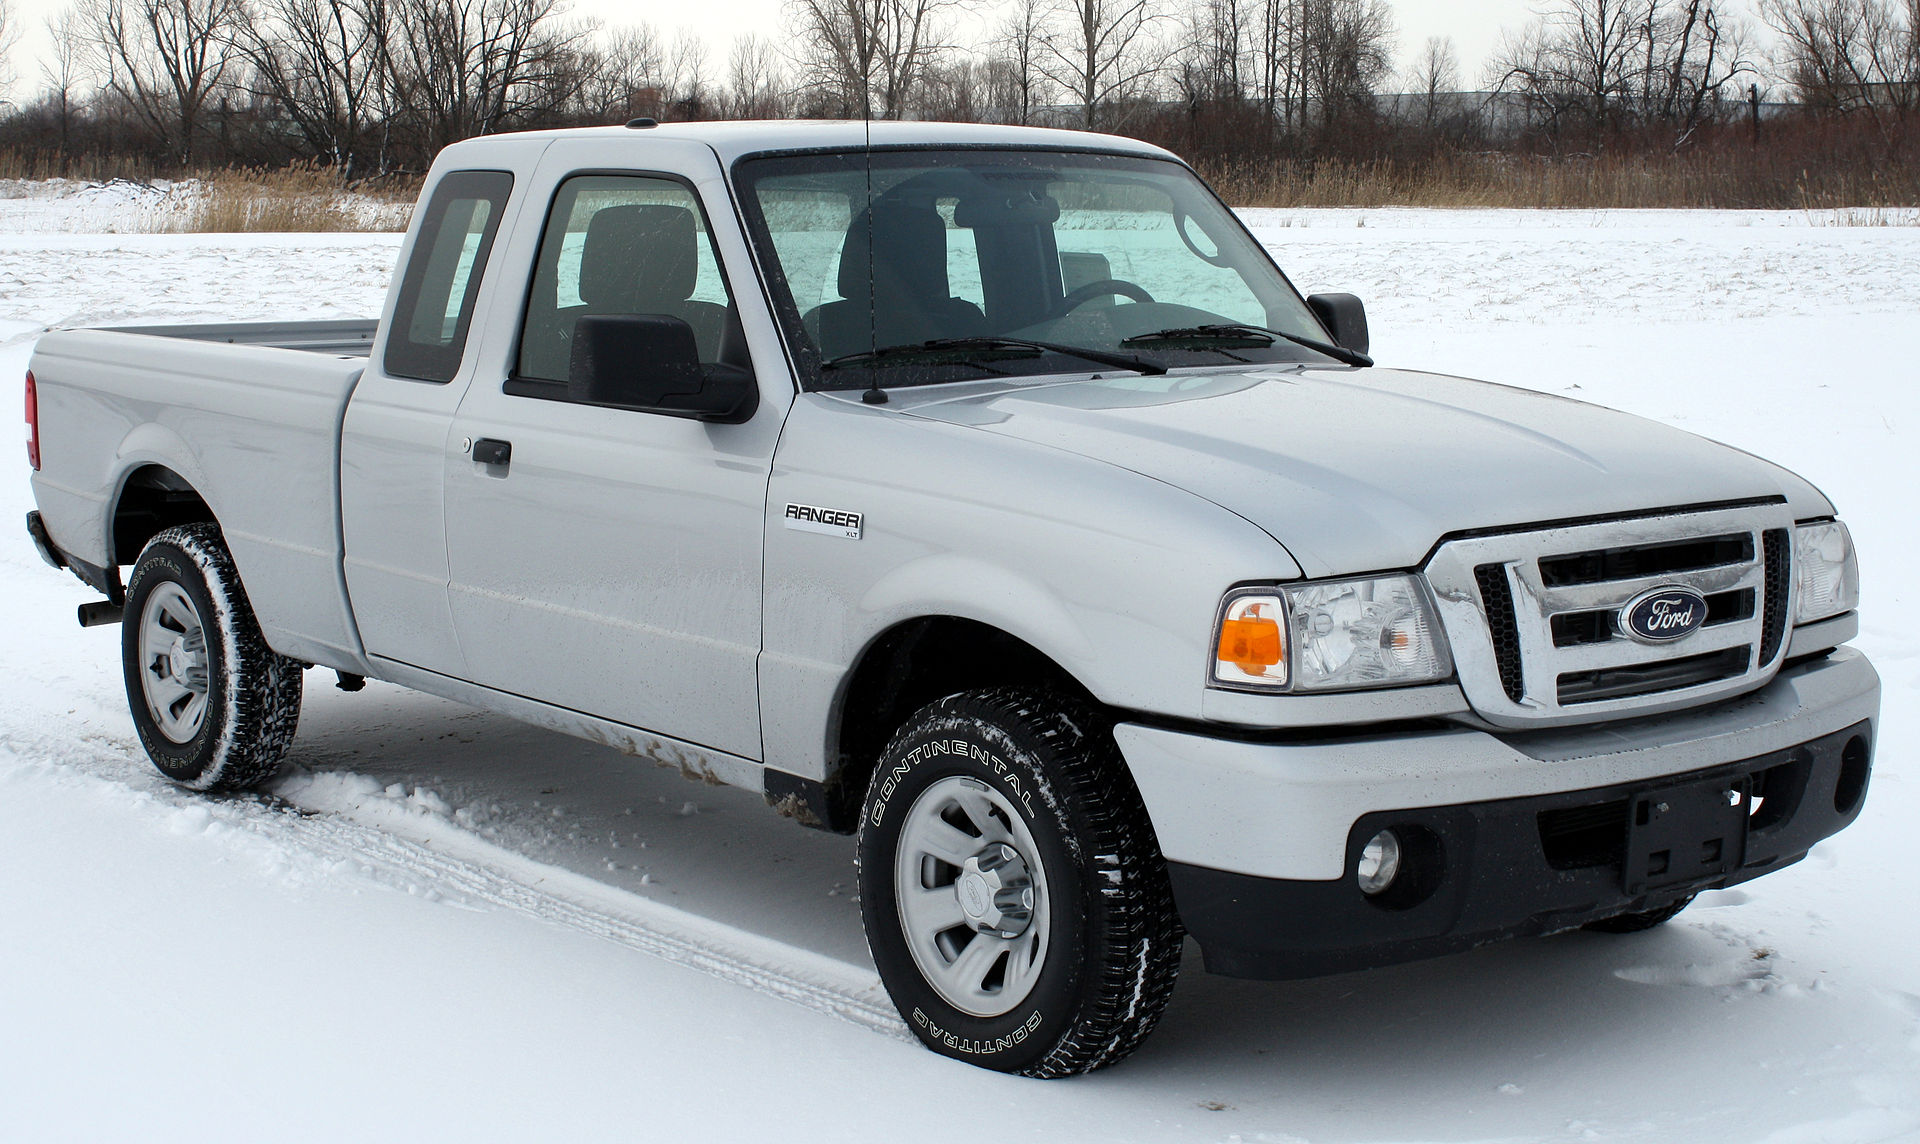 1996 toyota land cruiser wiring diagram 4 pin connector ford ranger (north america) - wikipedia